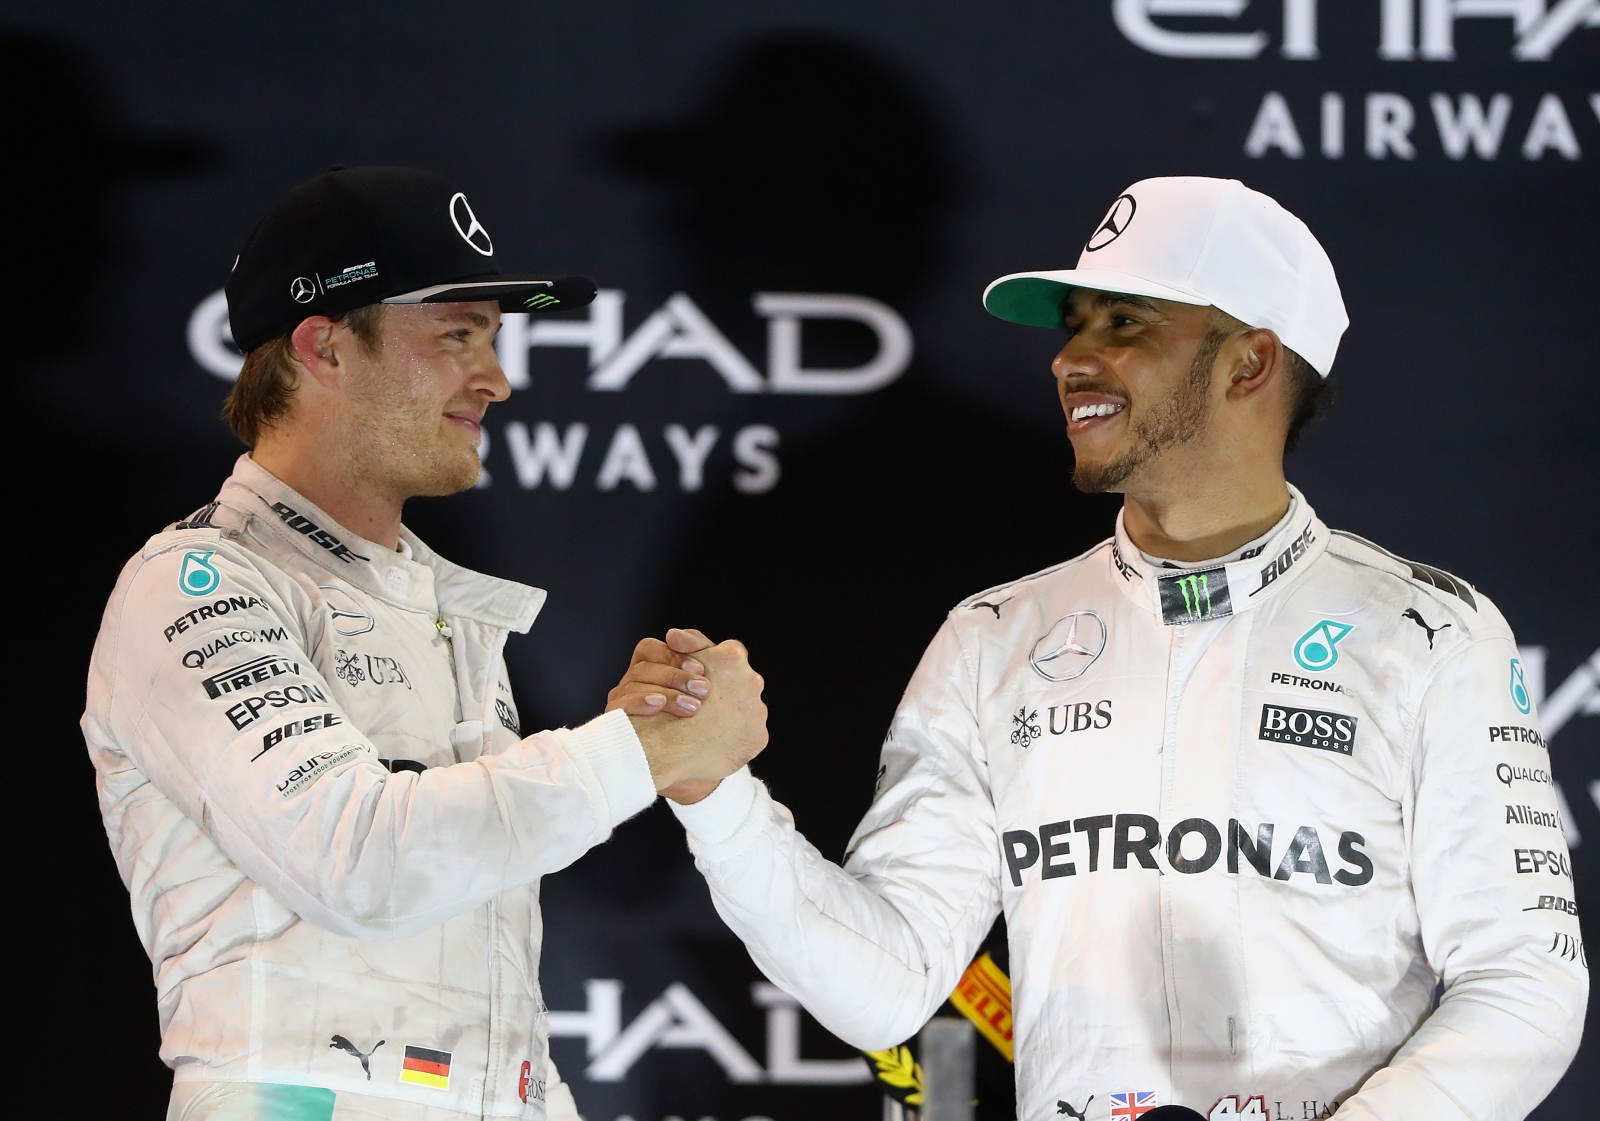 Bottas: Too early to back Hamilton in title race